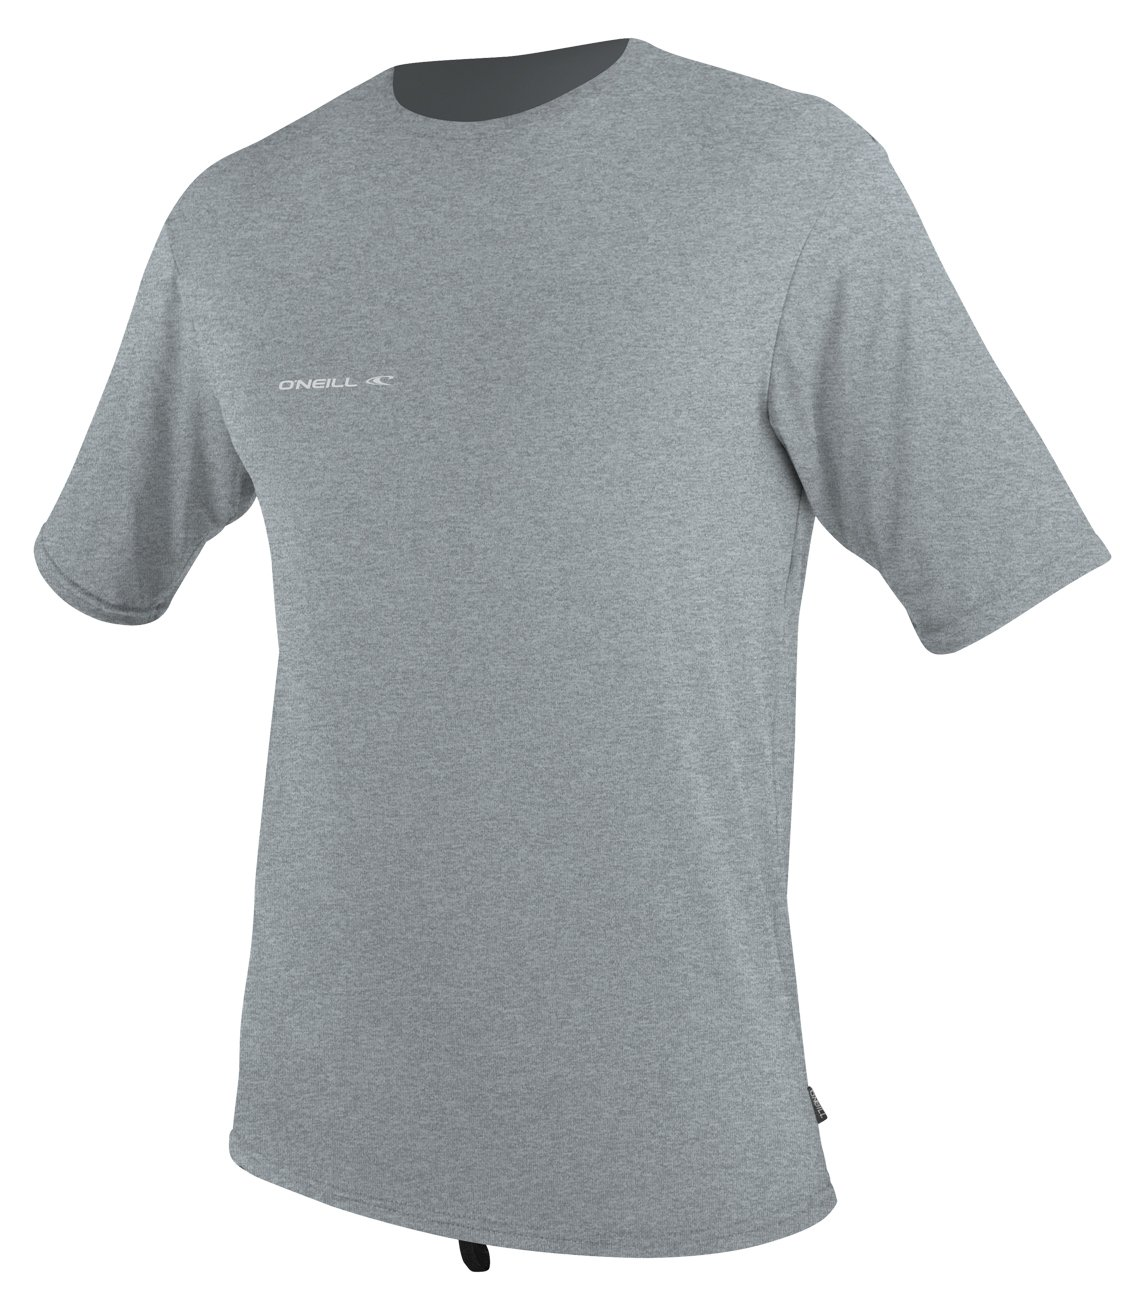 O'Neill  Men's Hybrid UPF 50+ Short Sleeve Sun Shirt, CoolGrey,3X-Large by O'Neill Wetsuits